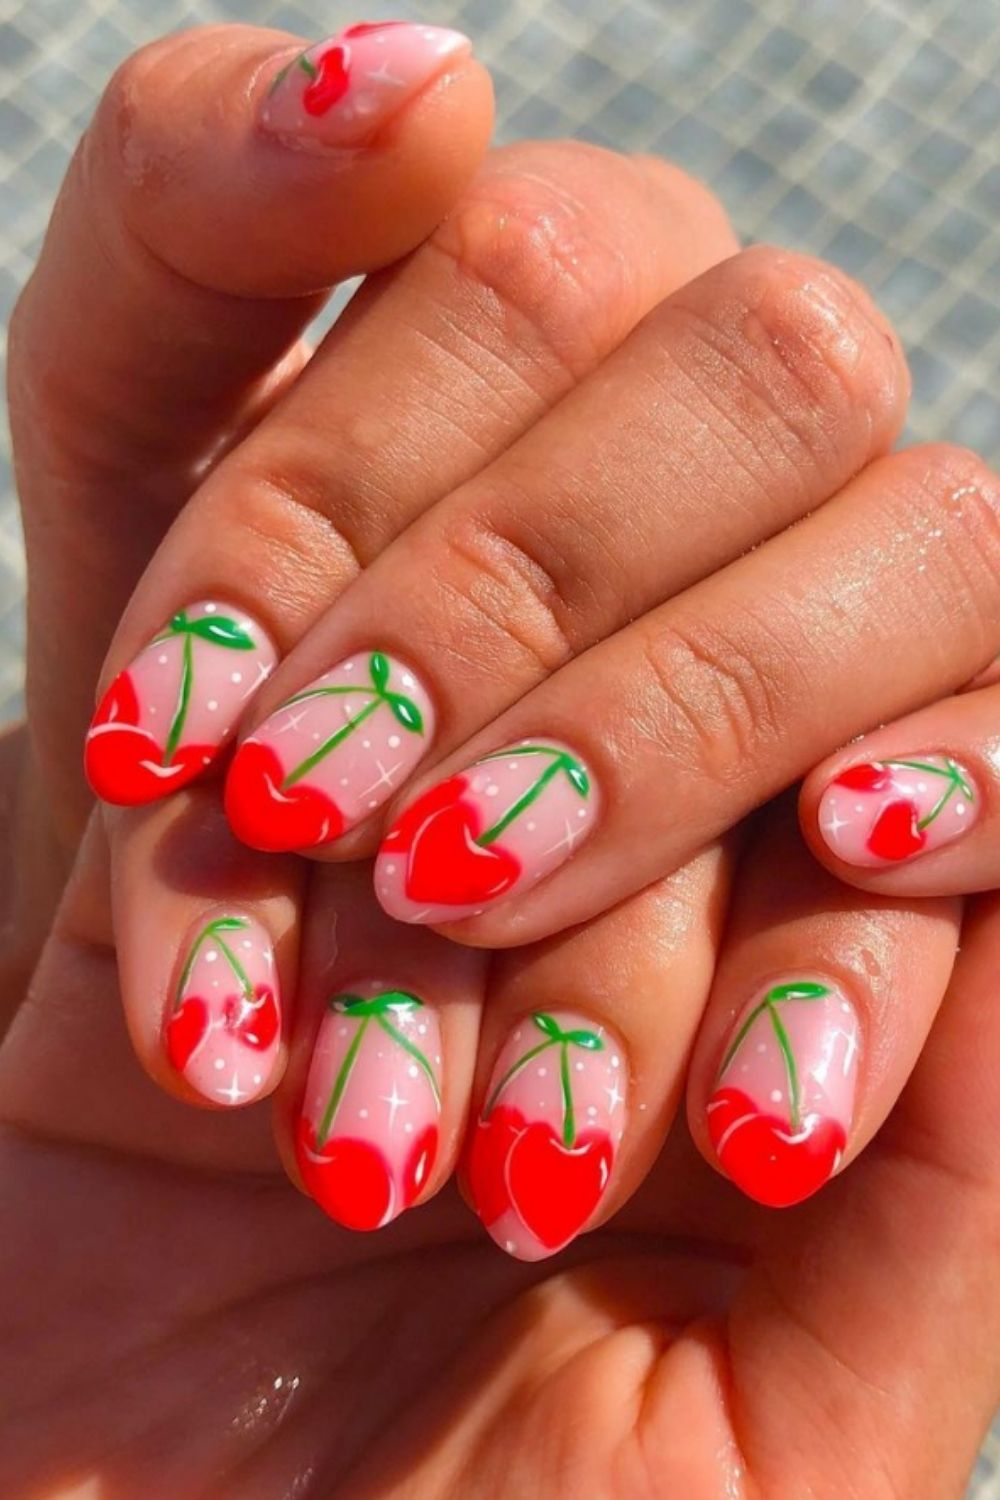 Summer almond nails | To Be All About the Almond Nails This Summer